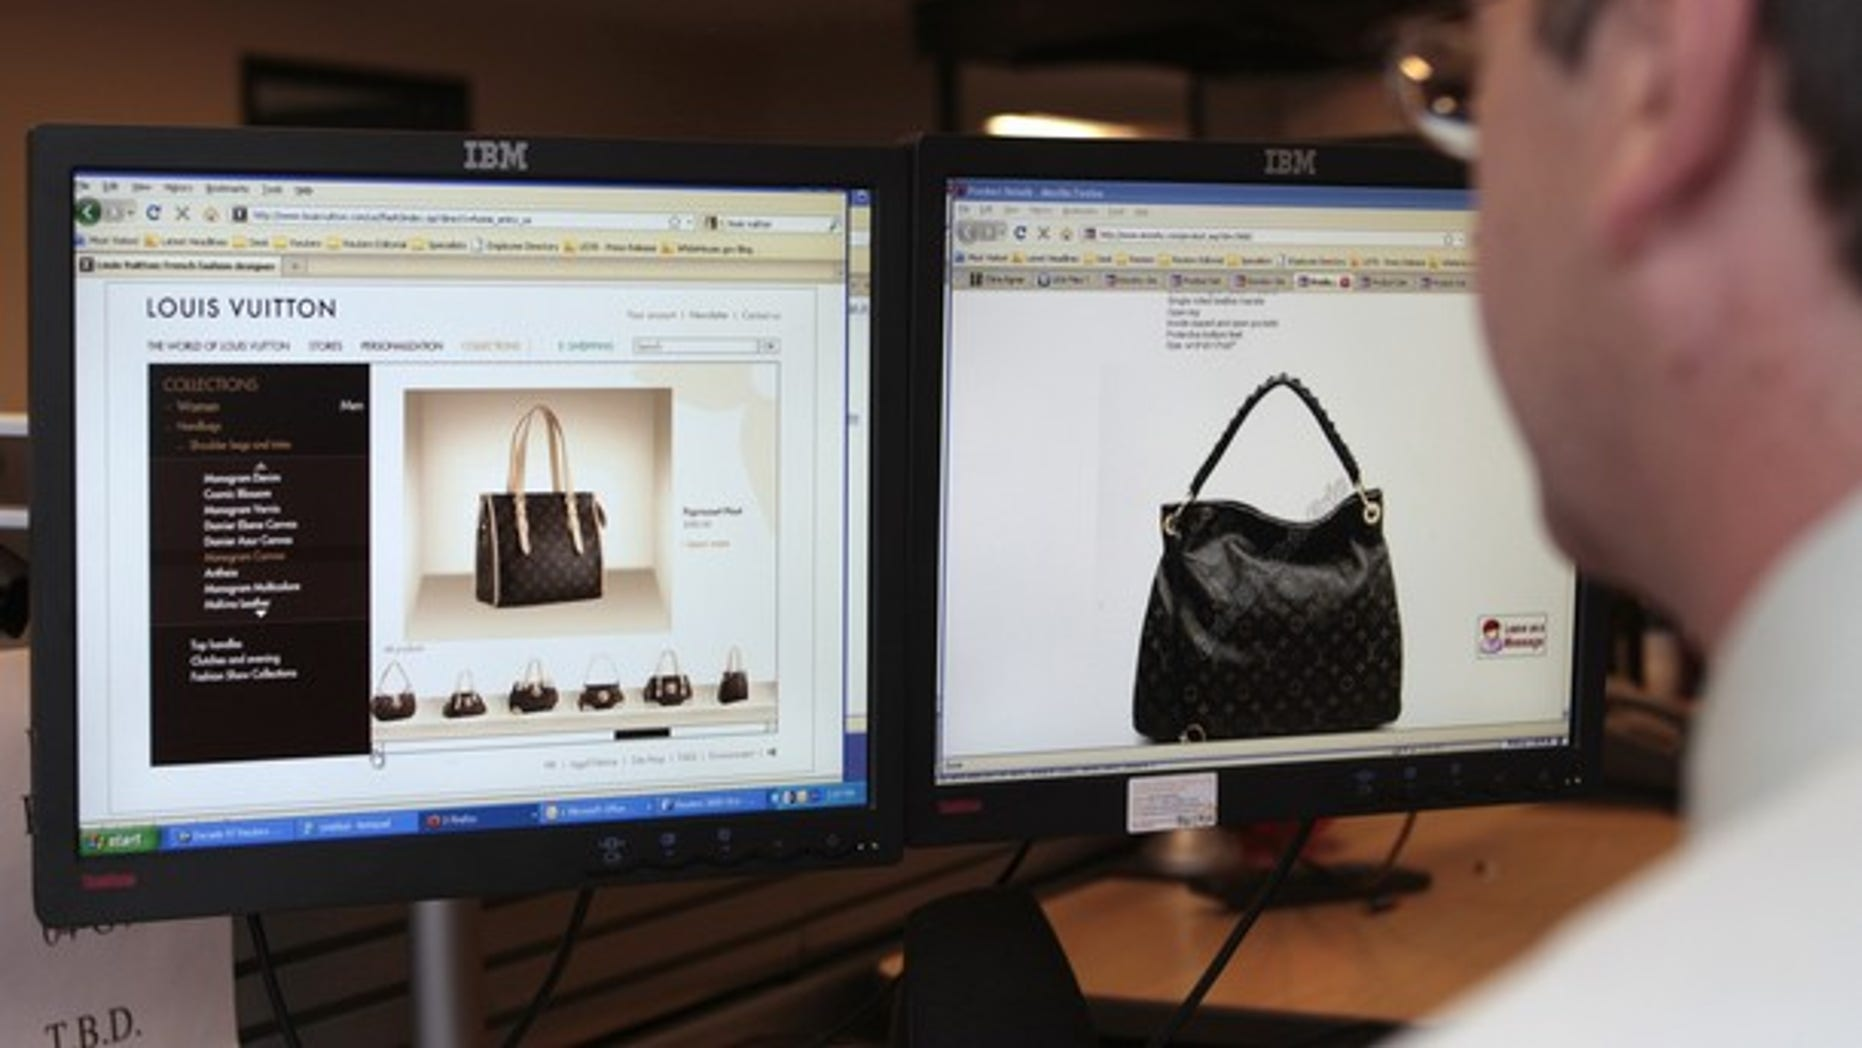 Reuters journalist Doug Palmer purchases a fake LVMH handbag from a China-based online website, from the Reuters office in Washington, September 10, 2010. (Reuters)